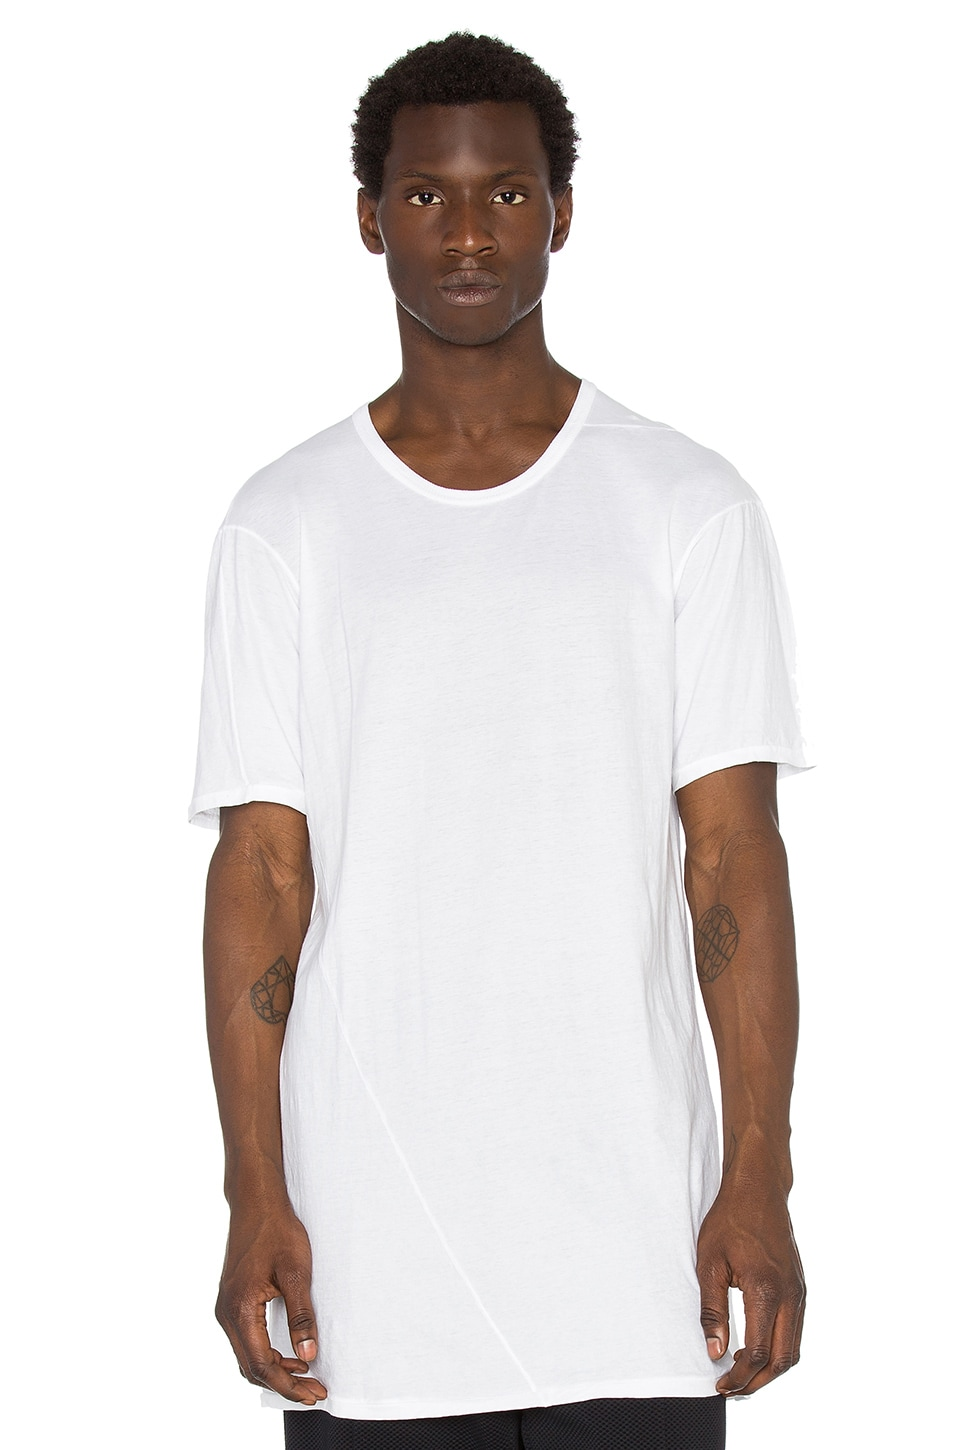 11 by Boris Bidjan Saberi Tee in White